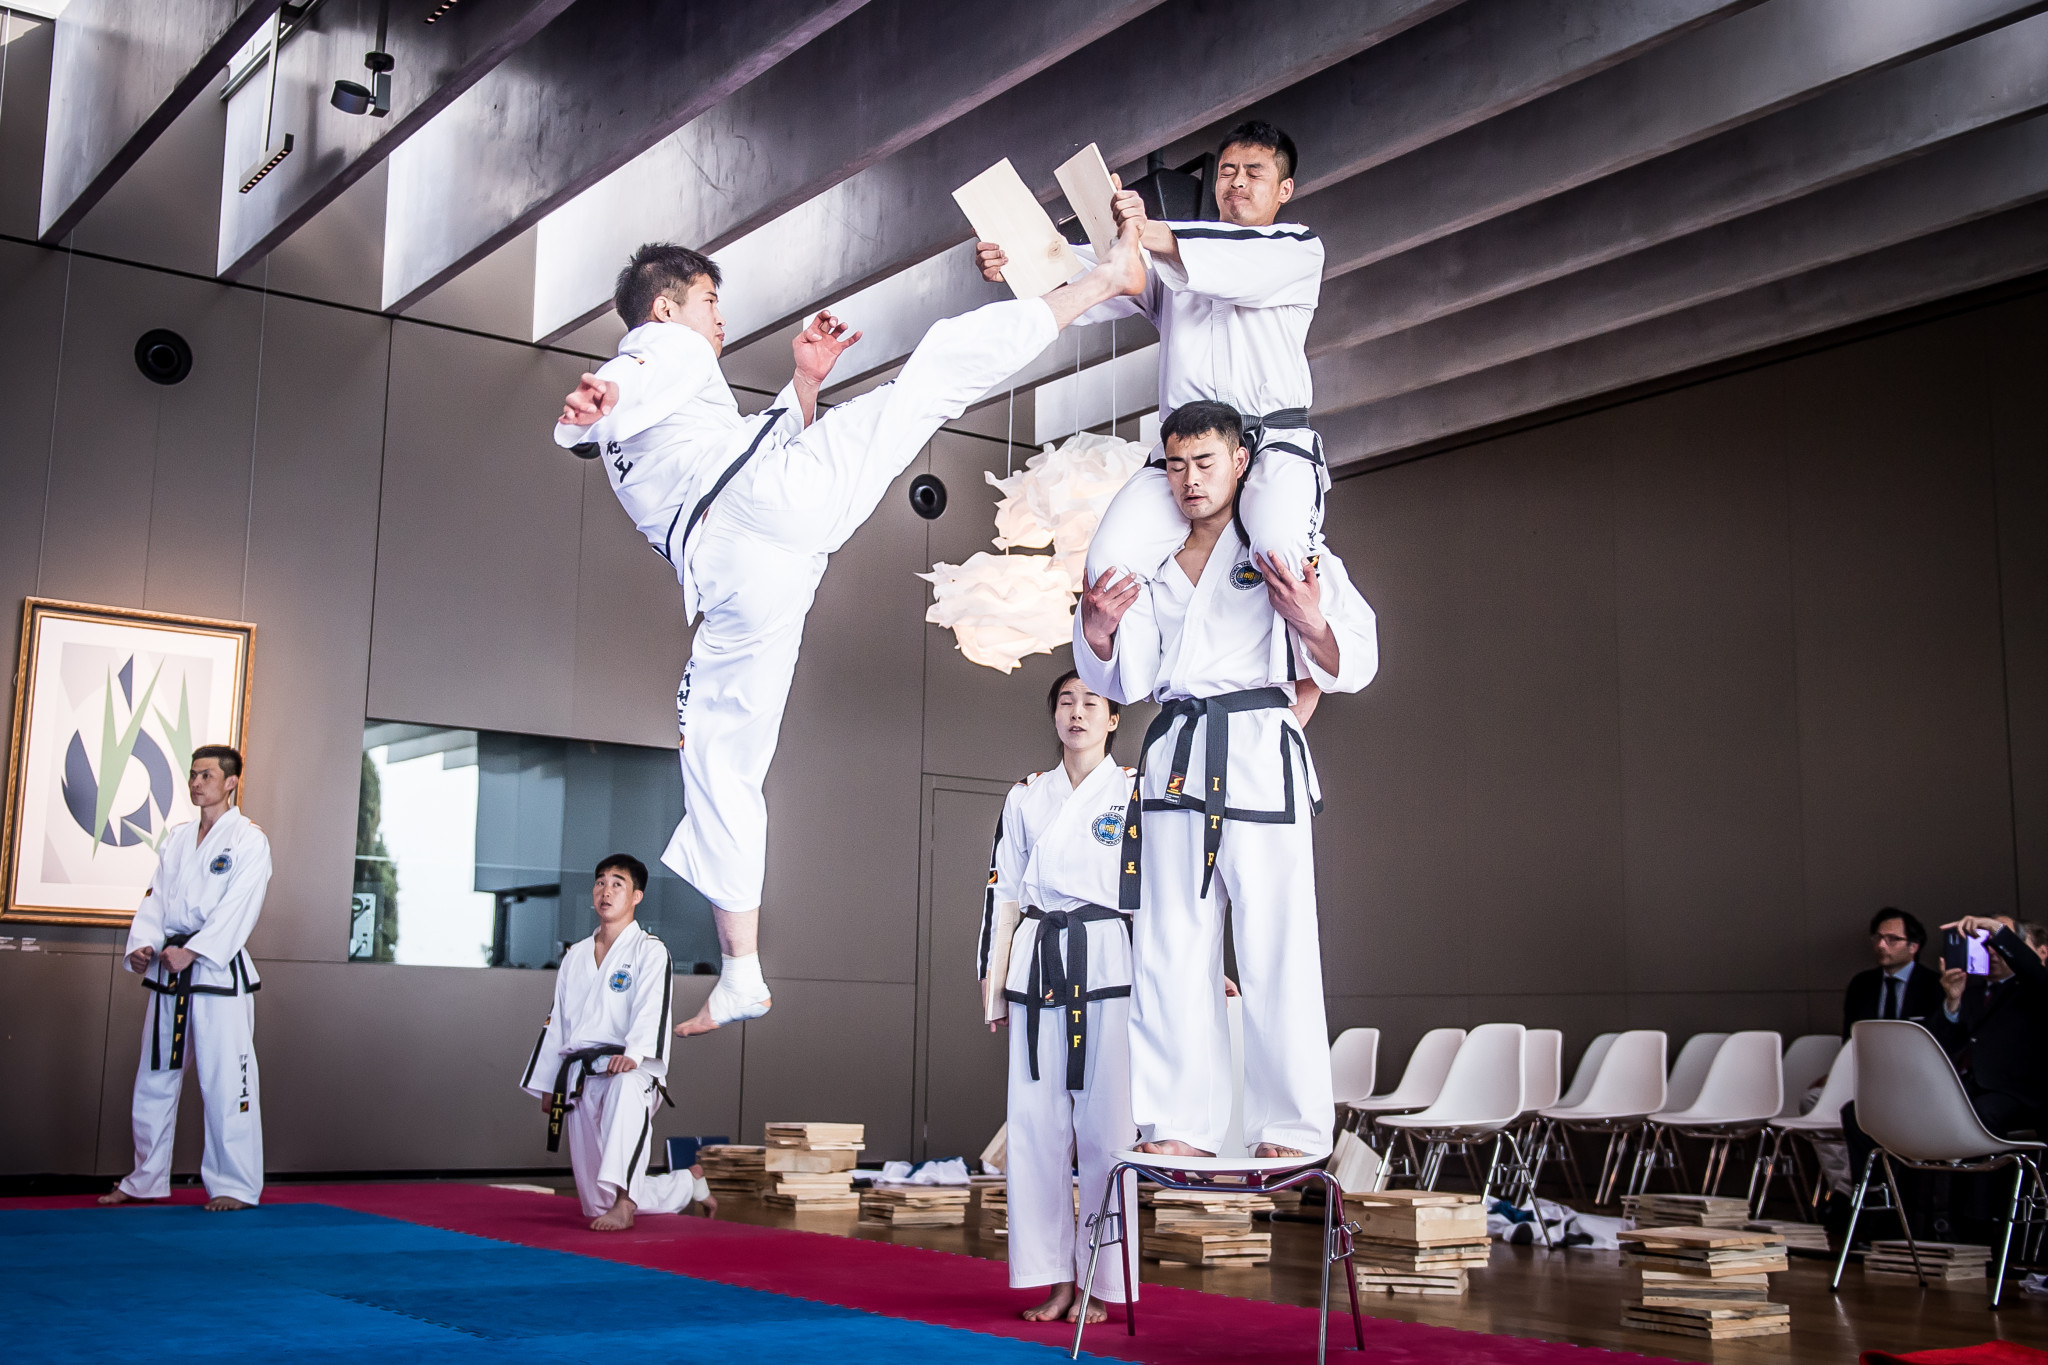 The joint demonstration then begun, with the team from the ITF performing first ©World Taekwondo